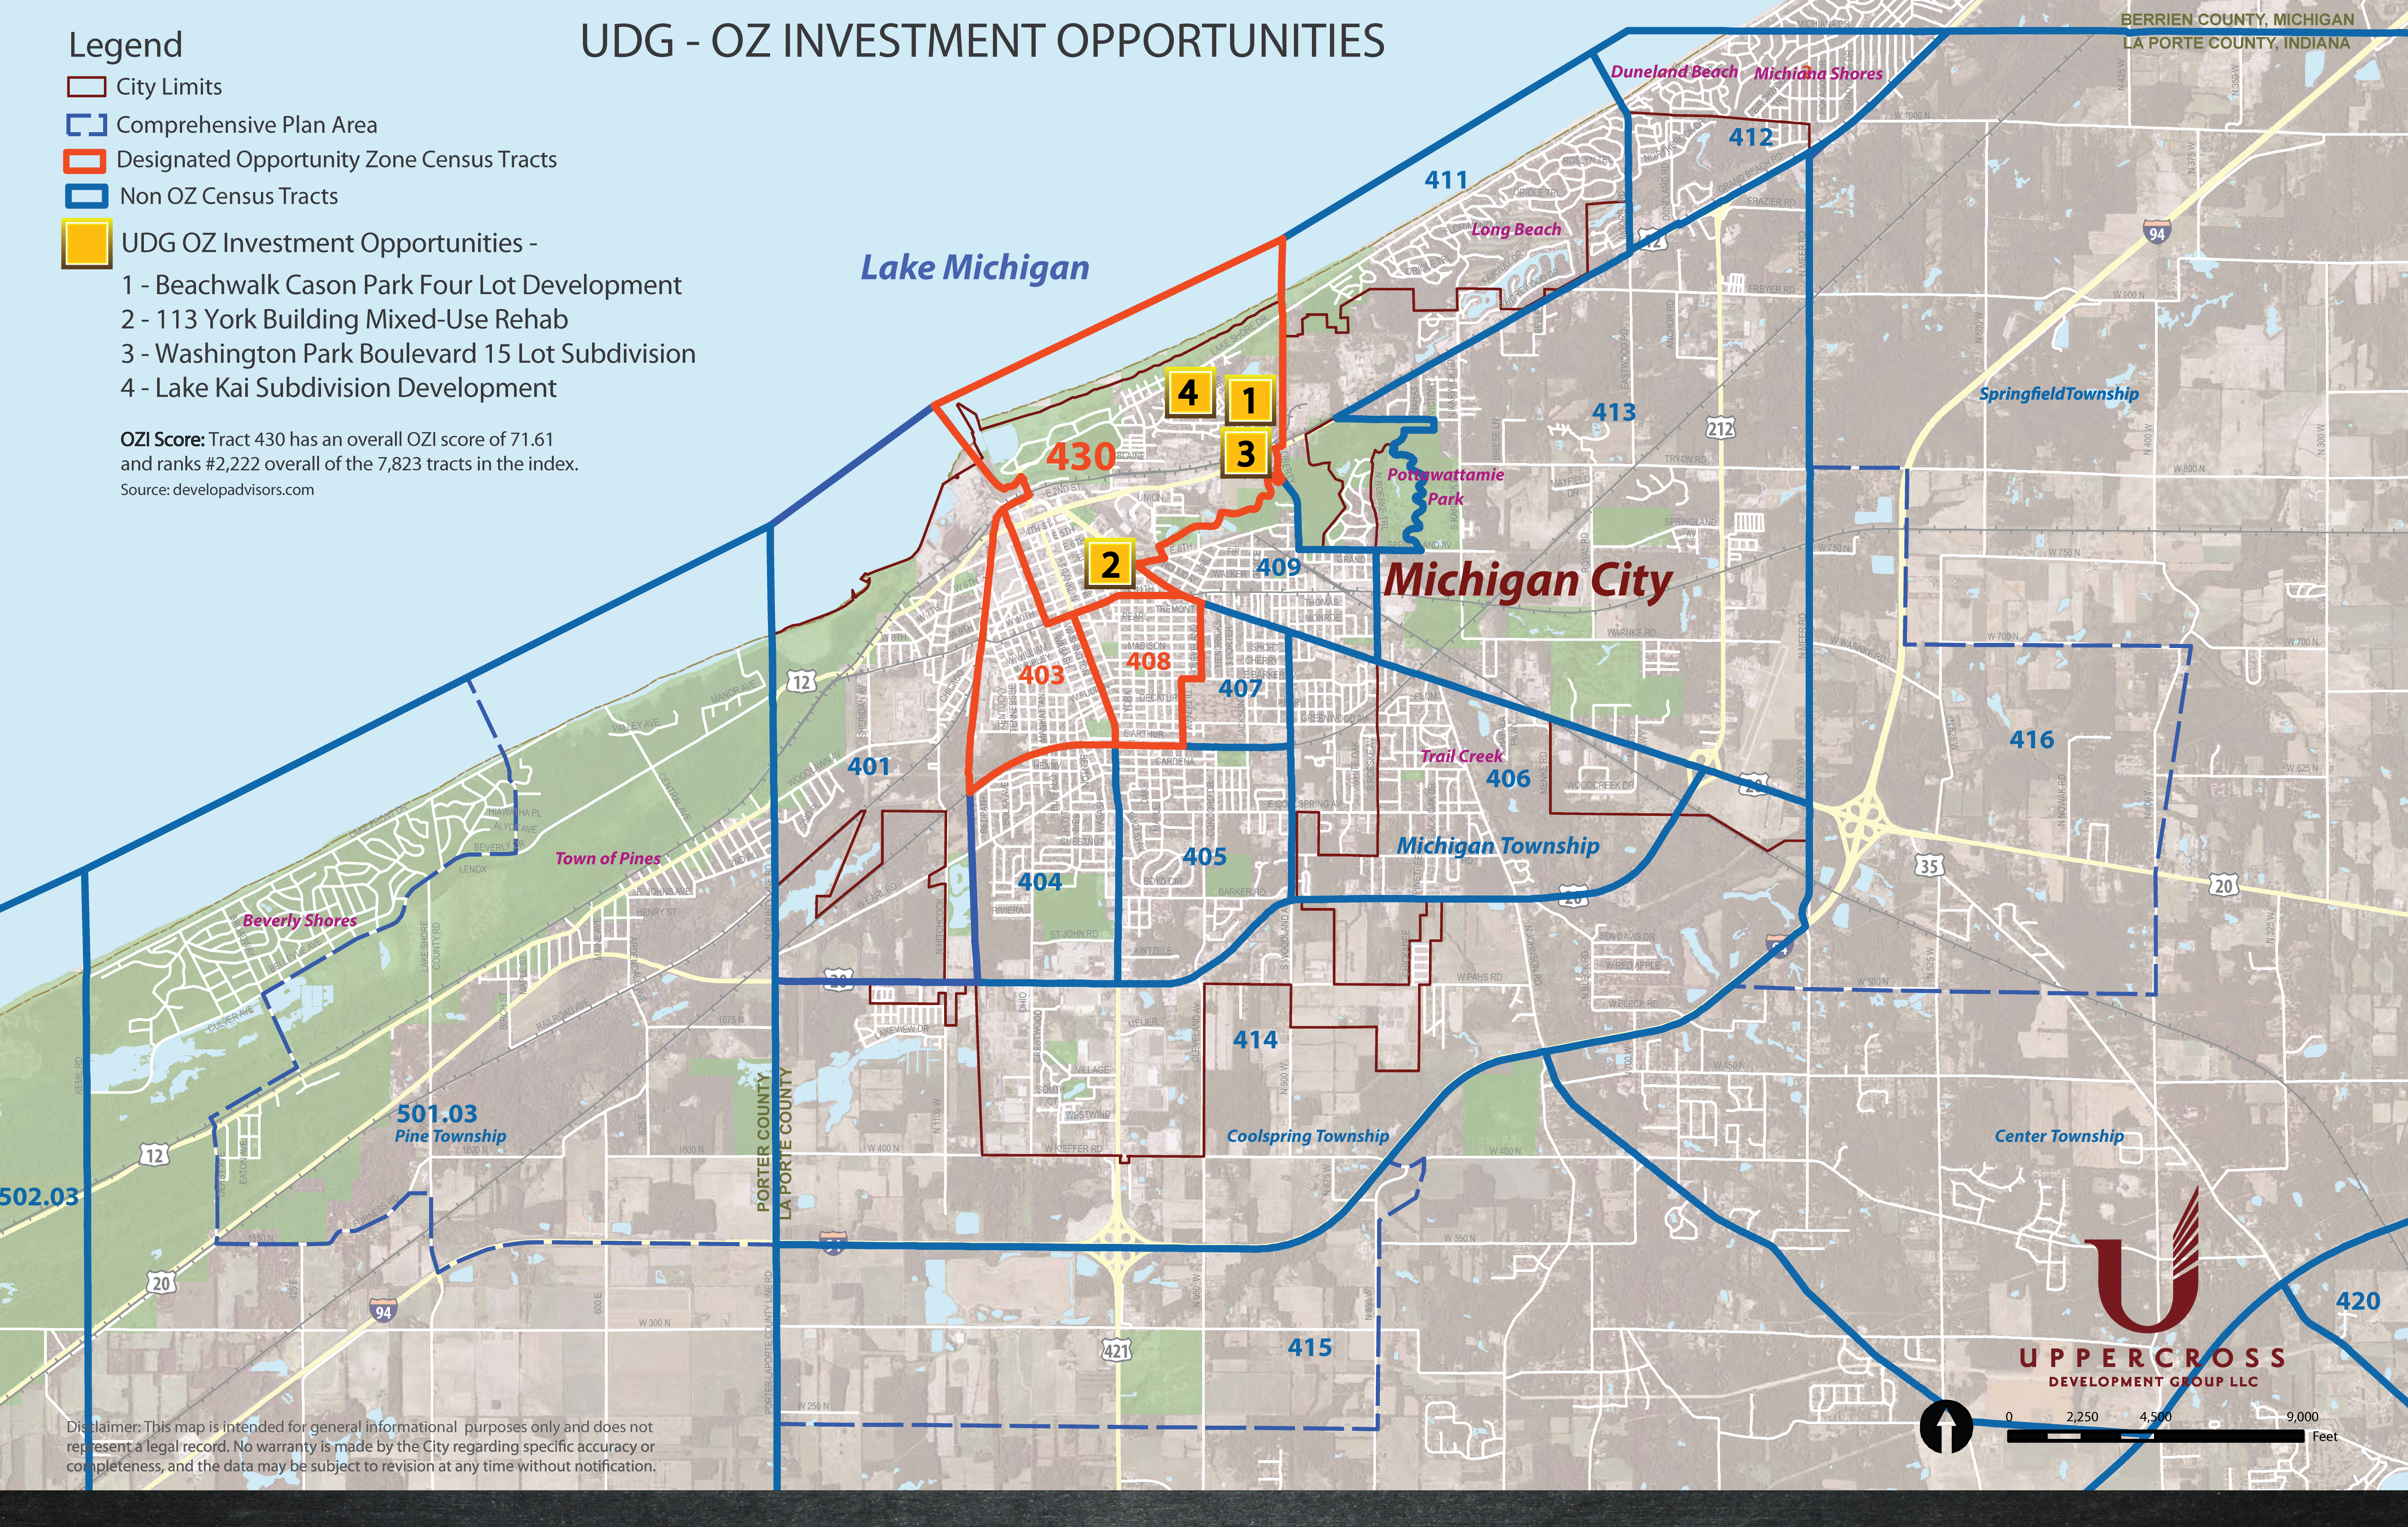 UDG - OZ Investment Opportunities